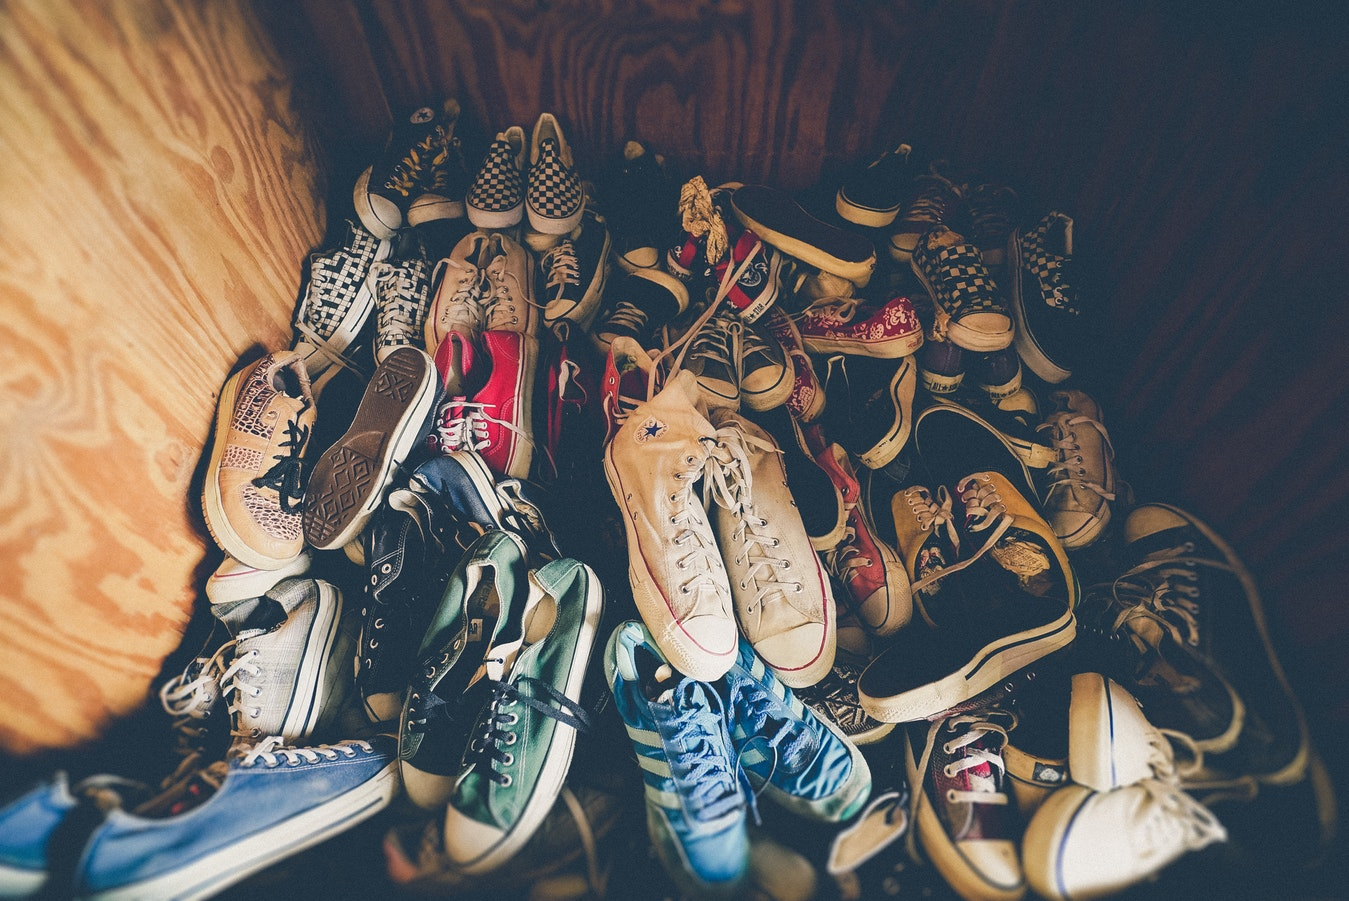 untidy space full with trainers